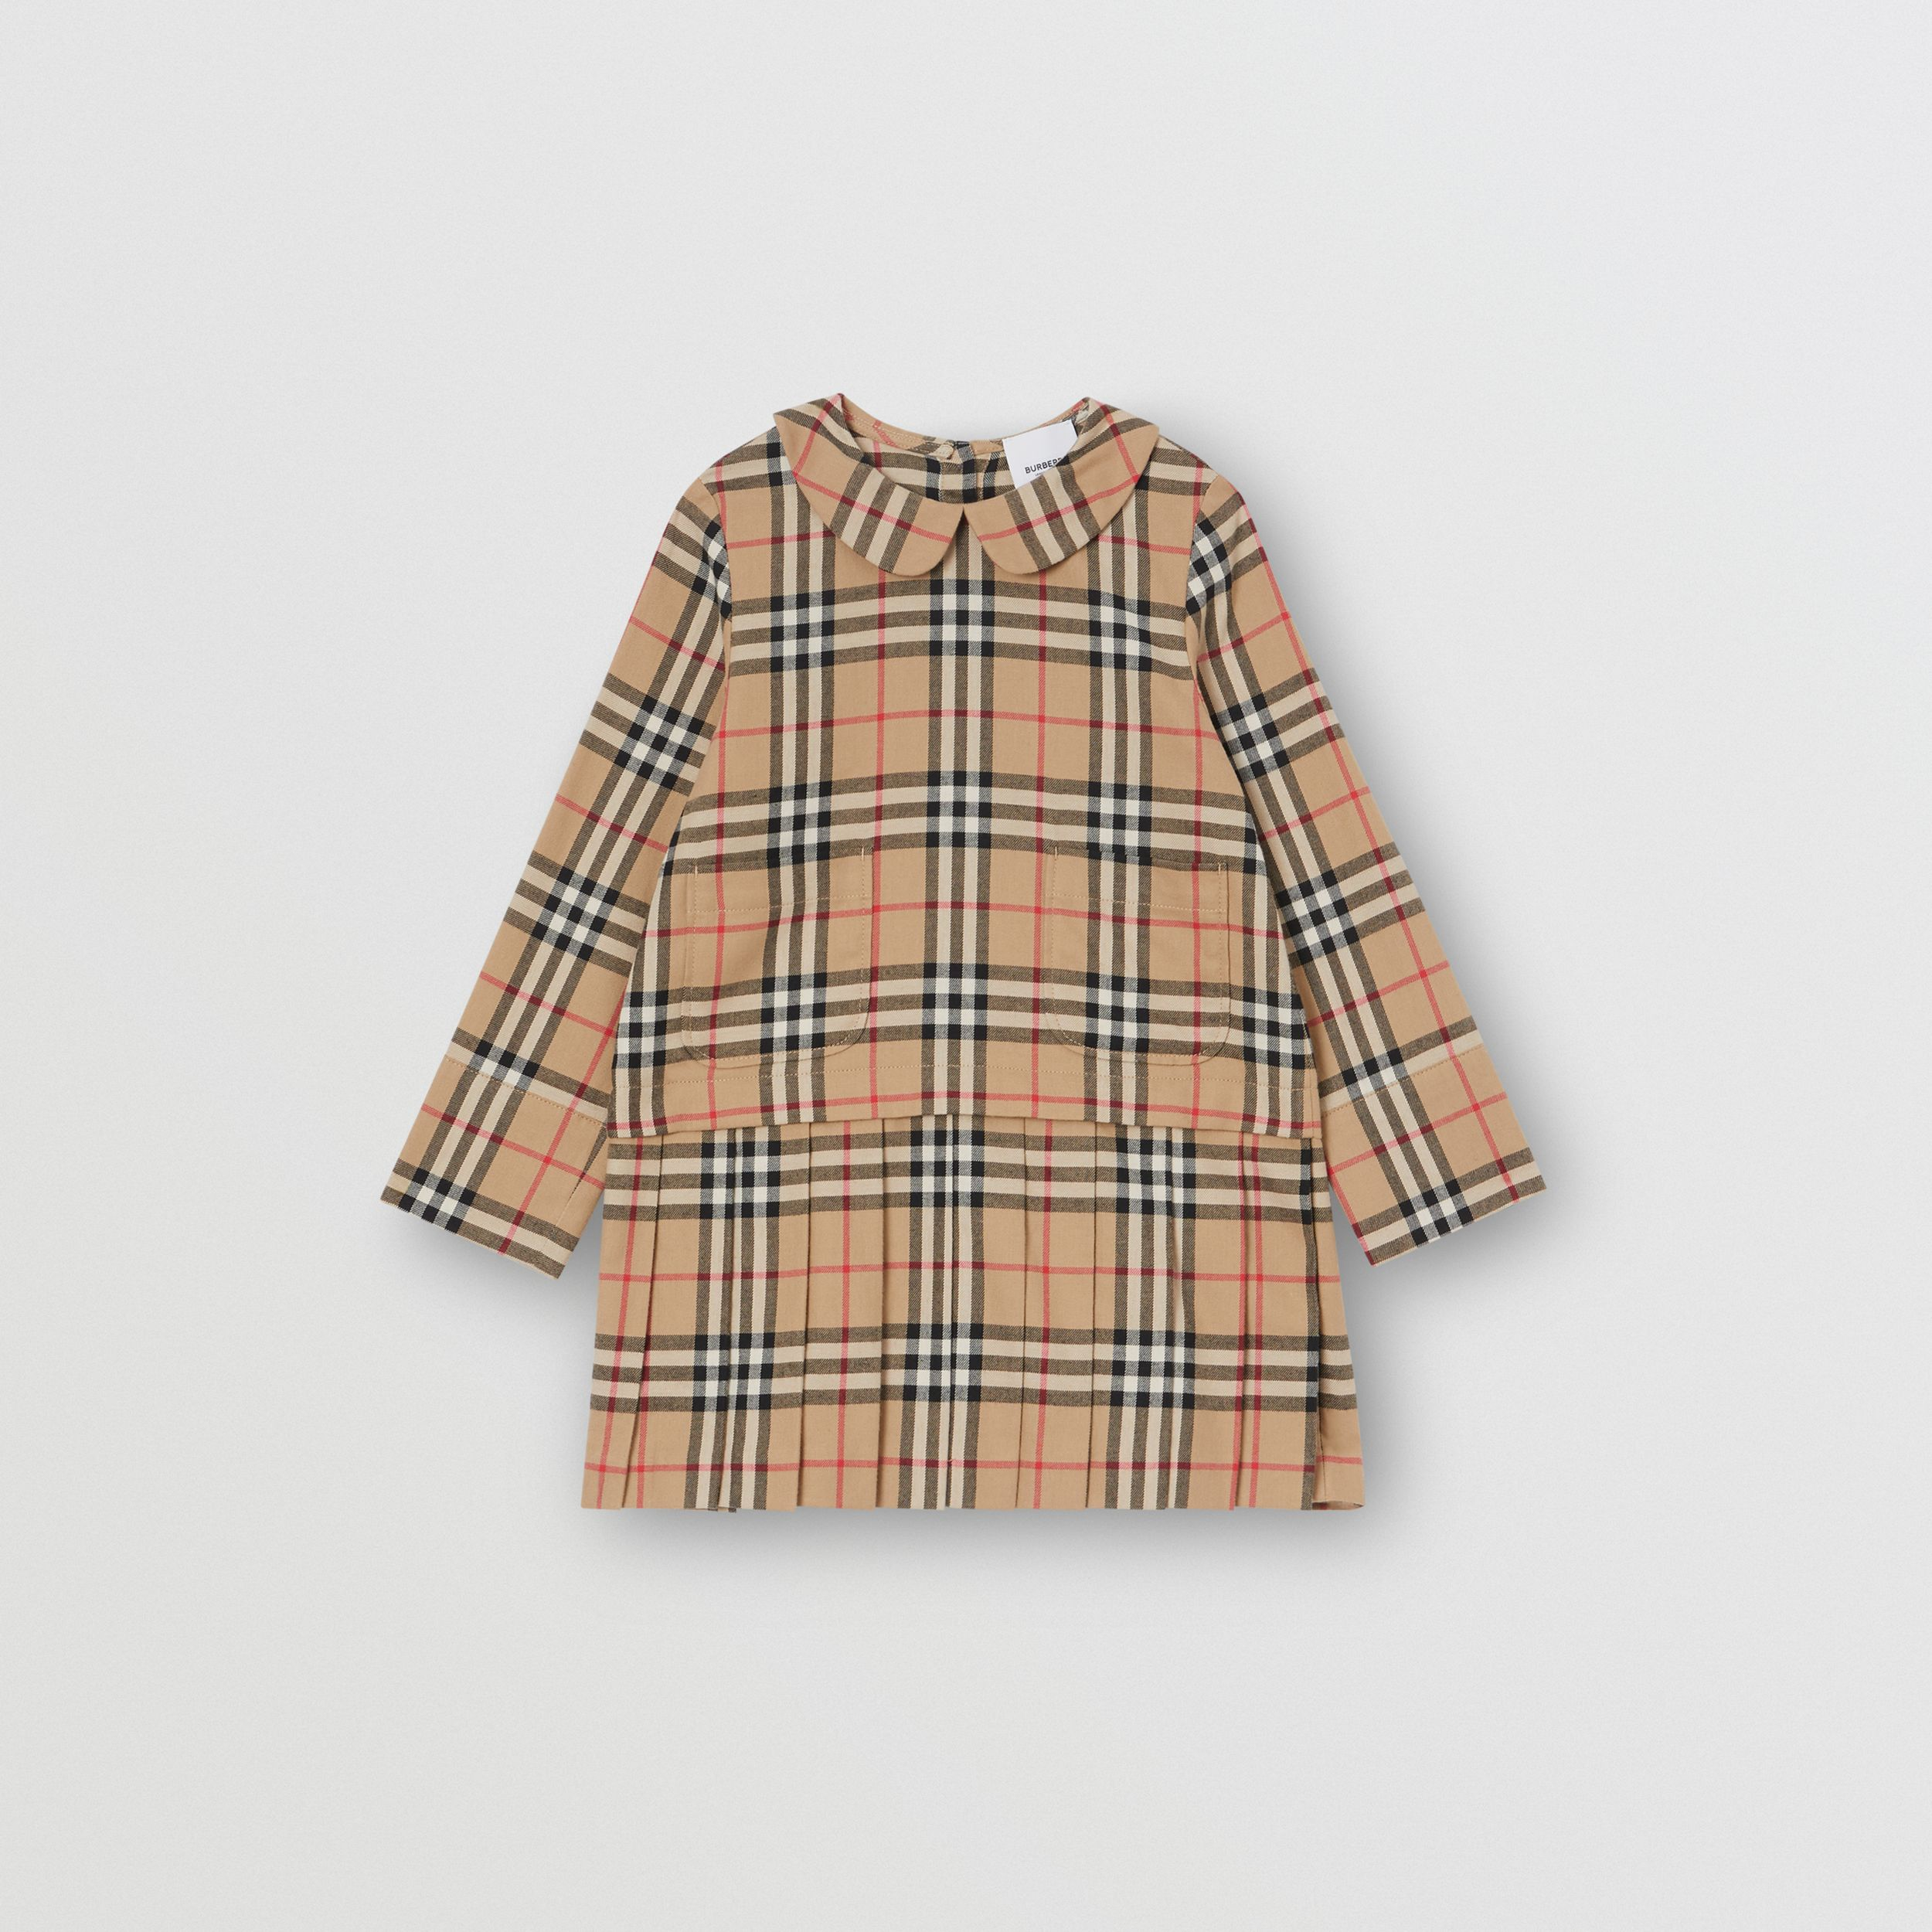 Peter Pan Collar Vintage Check Cotton Dress in Archive Beige | Burberry - 1